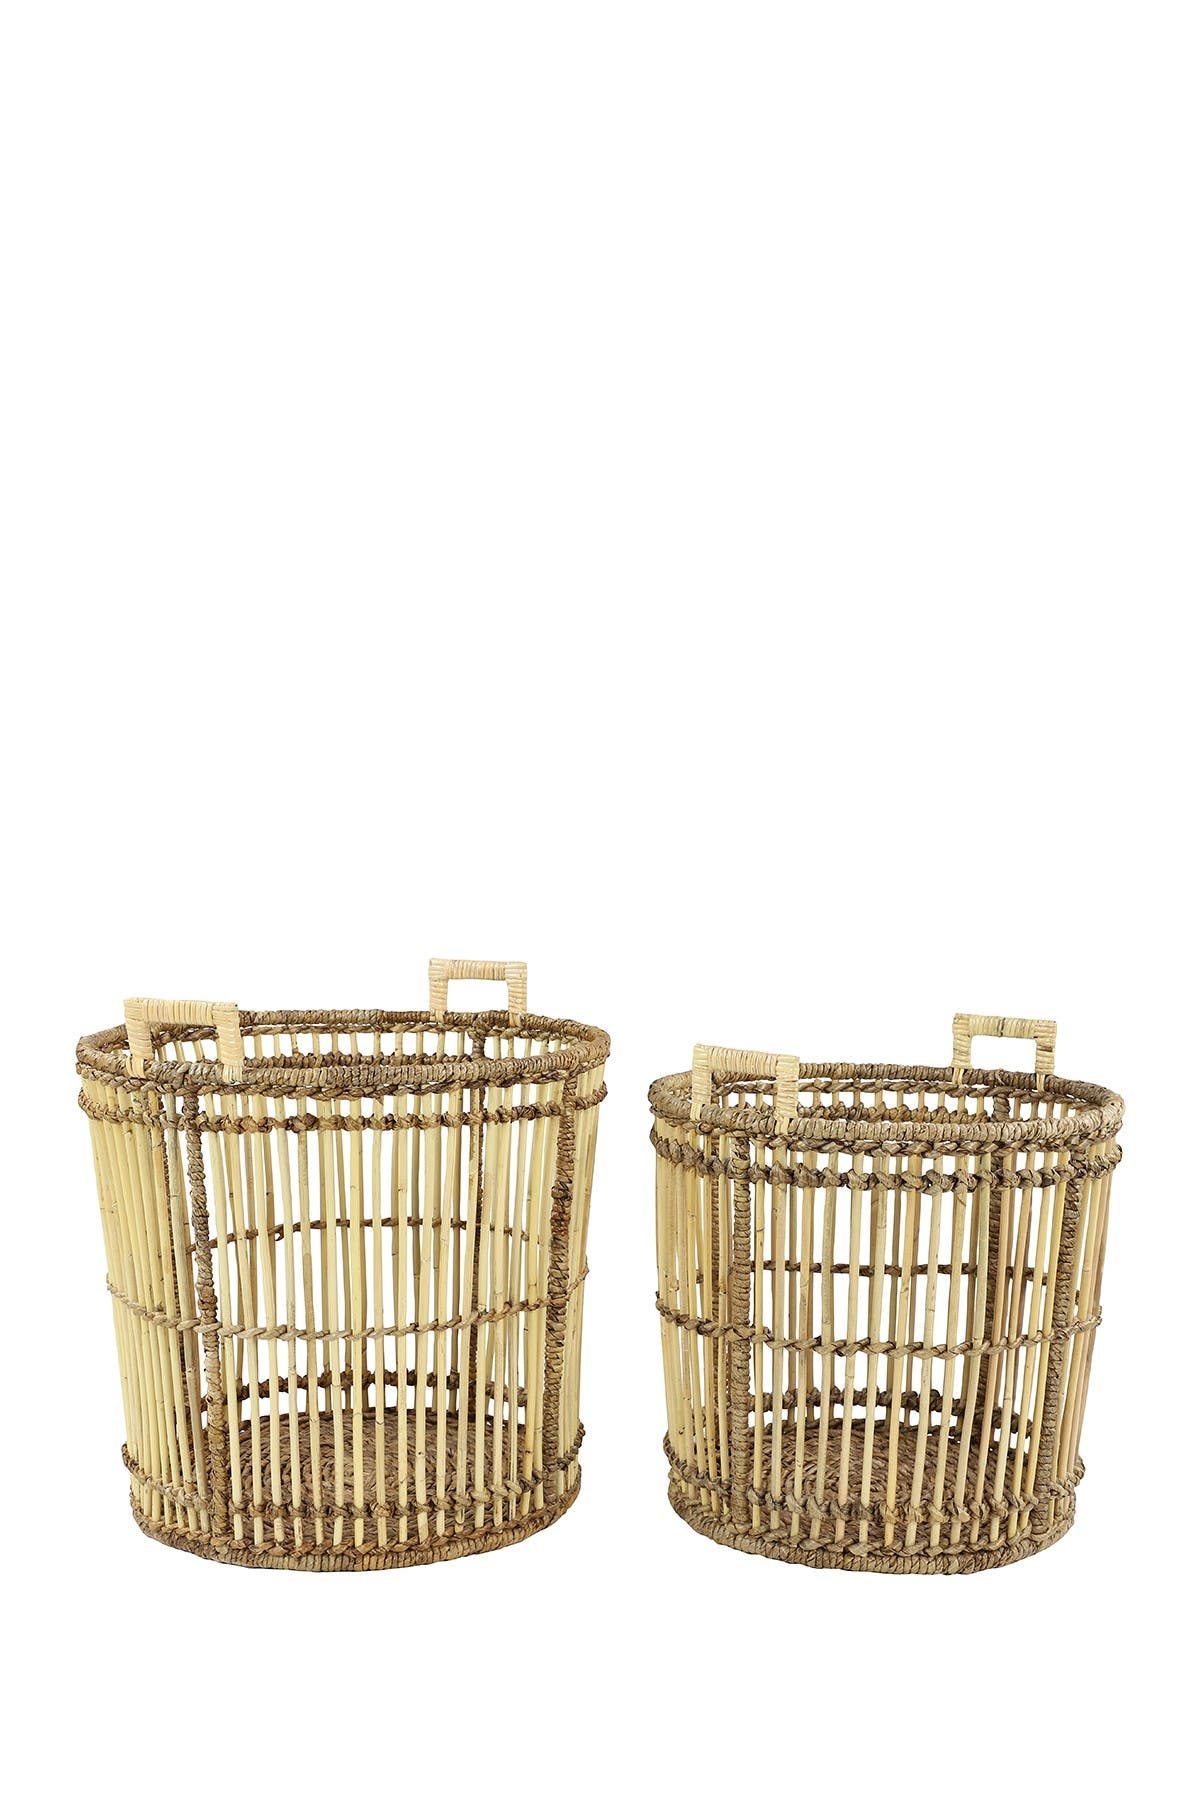 Willow Row Large Birdcage-Shaped Natural Bamboo Baskets w/ Banana Leaf Detail - Set of 2 at Nordstrom Rack